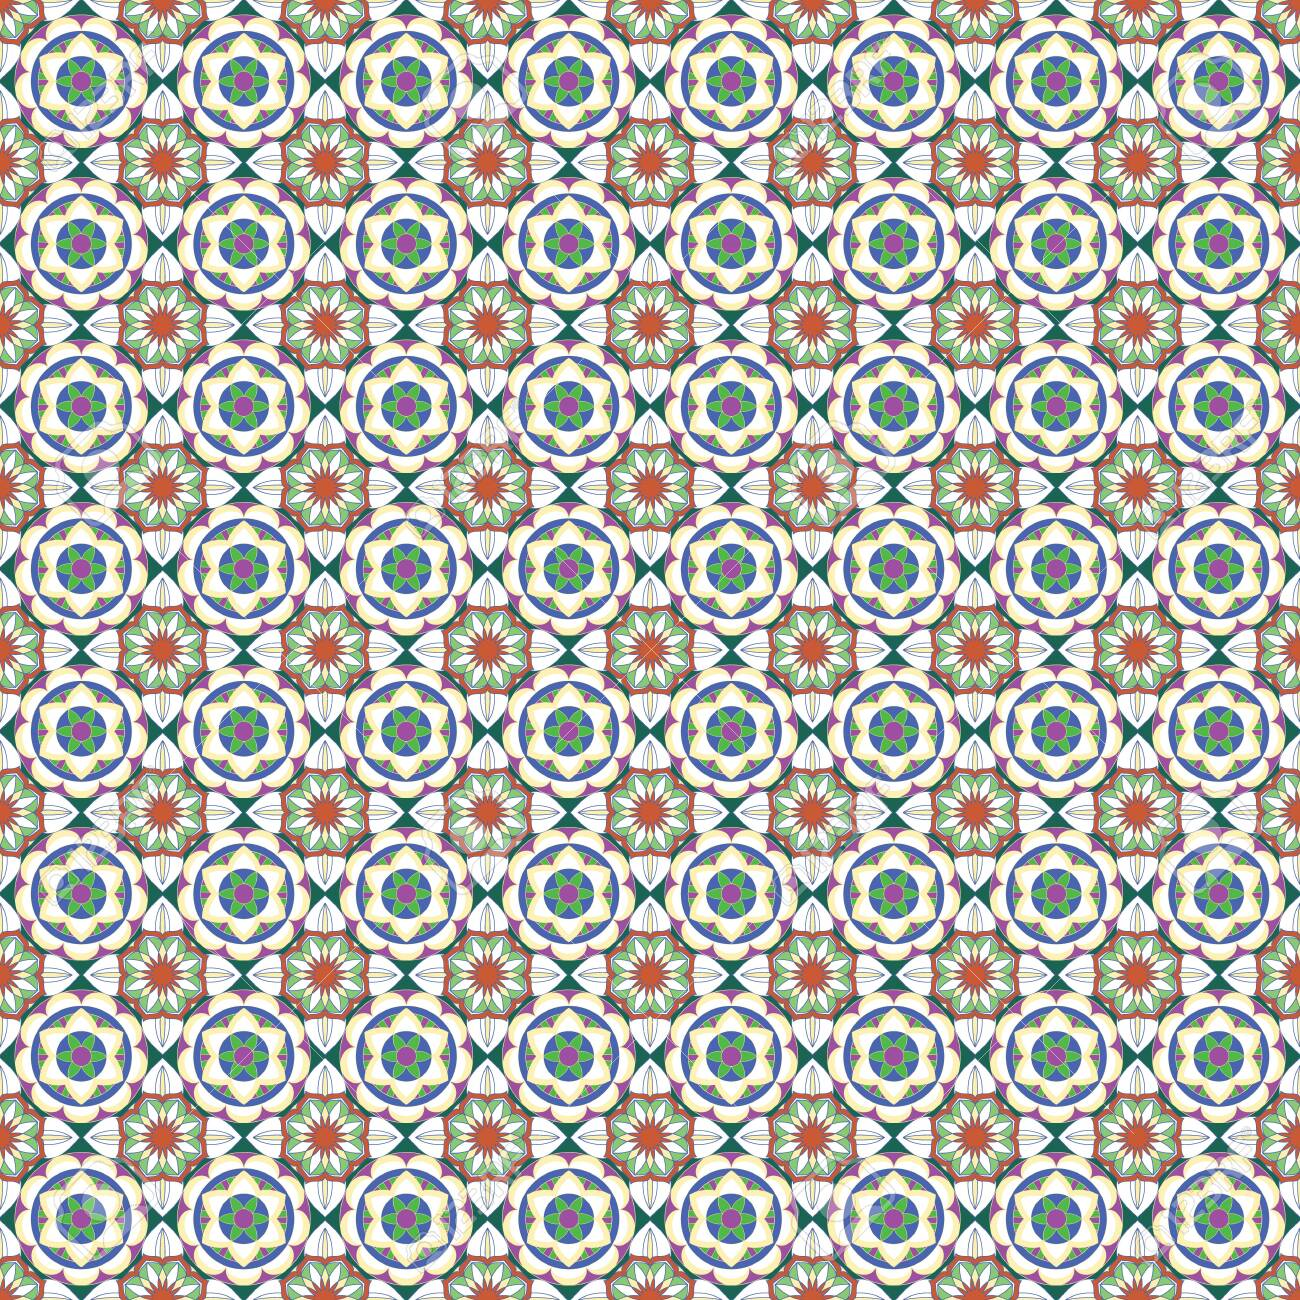 Seamless Ornate Pattern With Mandala Elements In Shades Of Orange Stock Photo Picture And Royalty Free Image Image 127177037